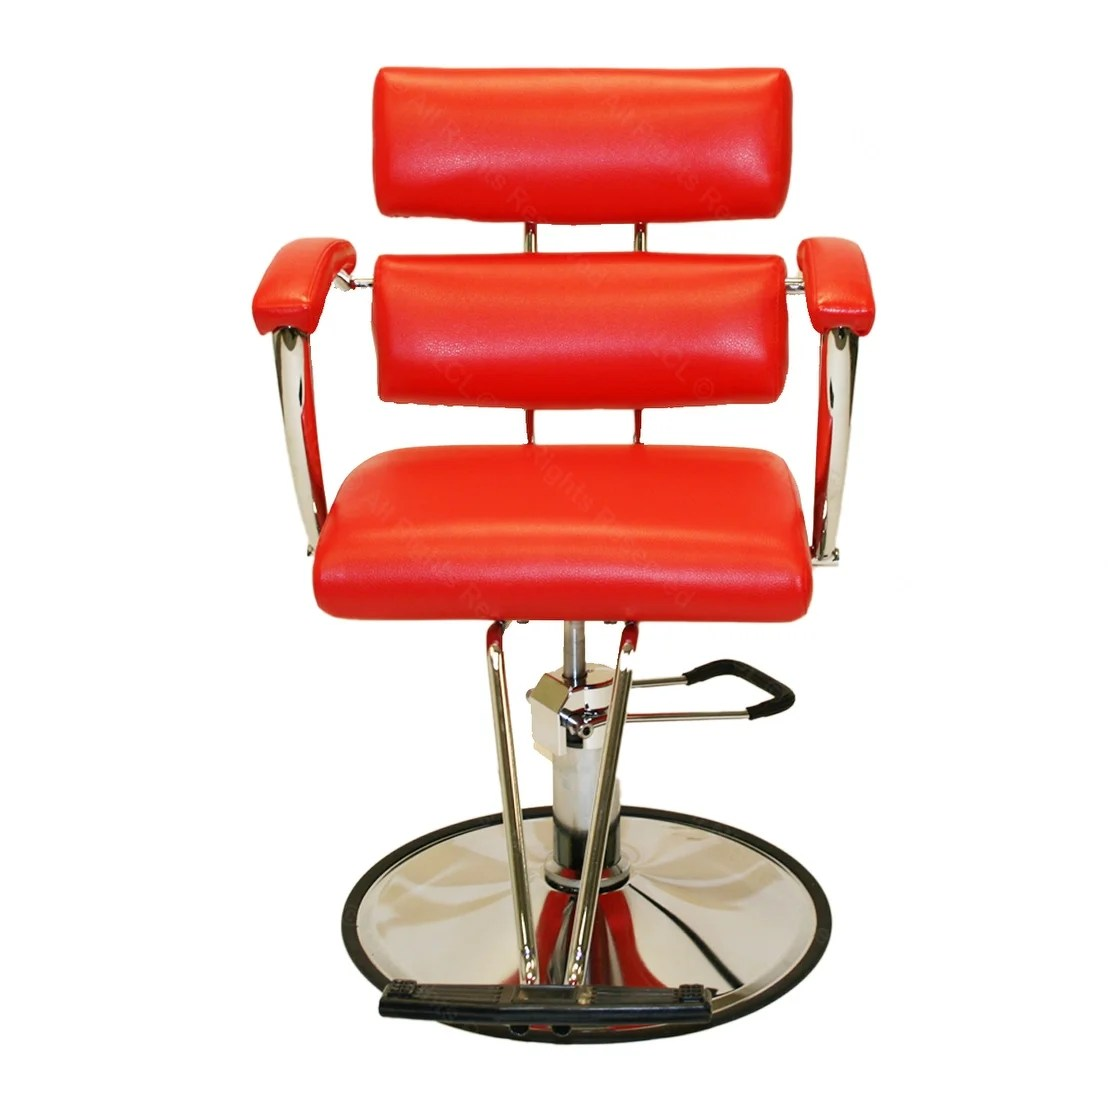 Red Barber Chair Lcl Beauty Contemporary Red Hydraulic Barber Styling Chair With Padded Armrests